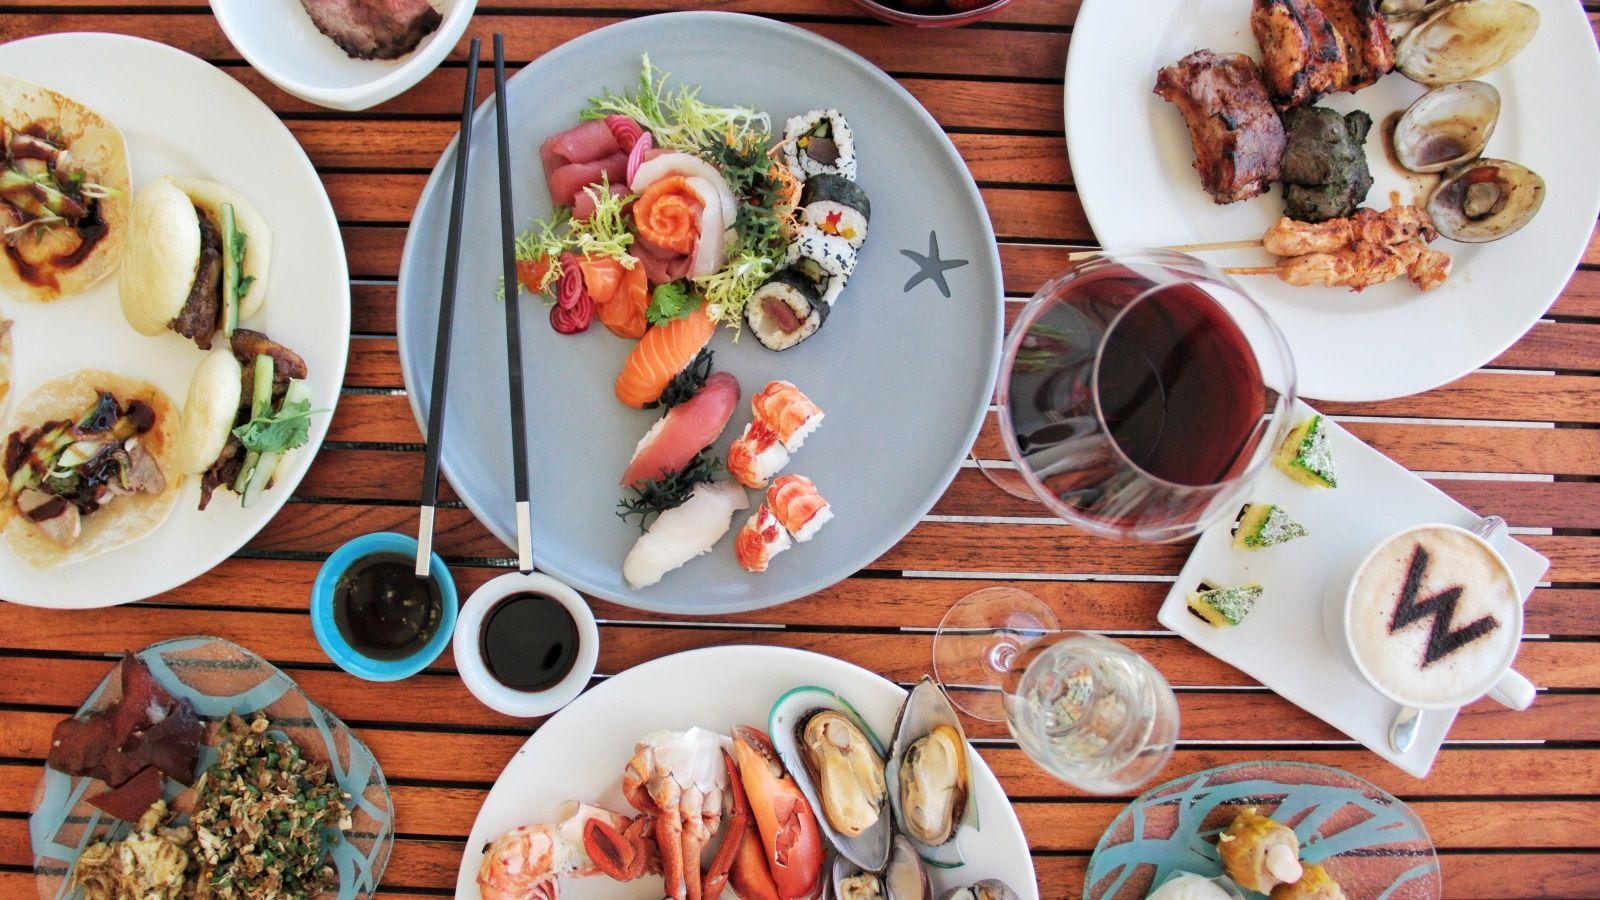 At W Bali Seminyak S Glamorous Yet Casual Beachside Seafood Restaurant Starfish Bloo Pan Asian Flavours Meet Western Essences From Chef Curated Tasting